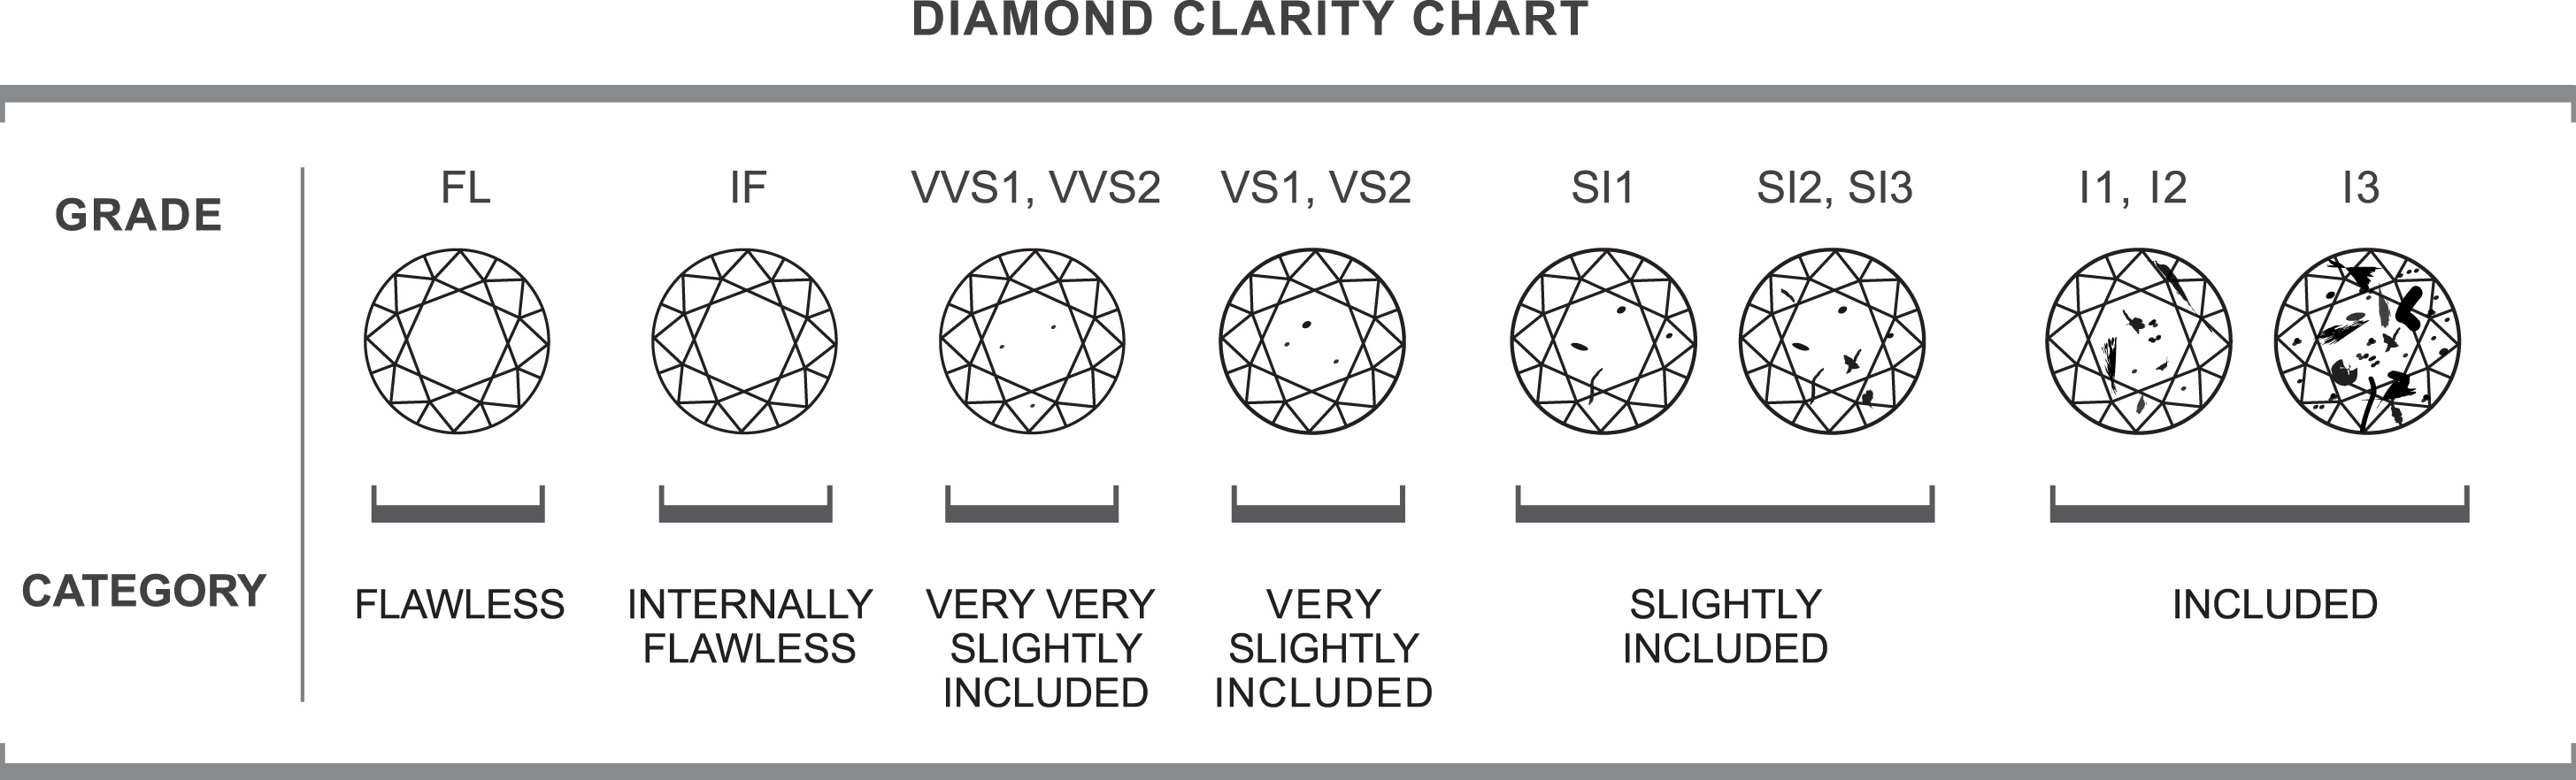 diamond gia grading in color graded f carat report princess clarity orig diamonds lab